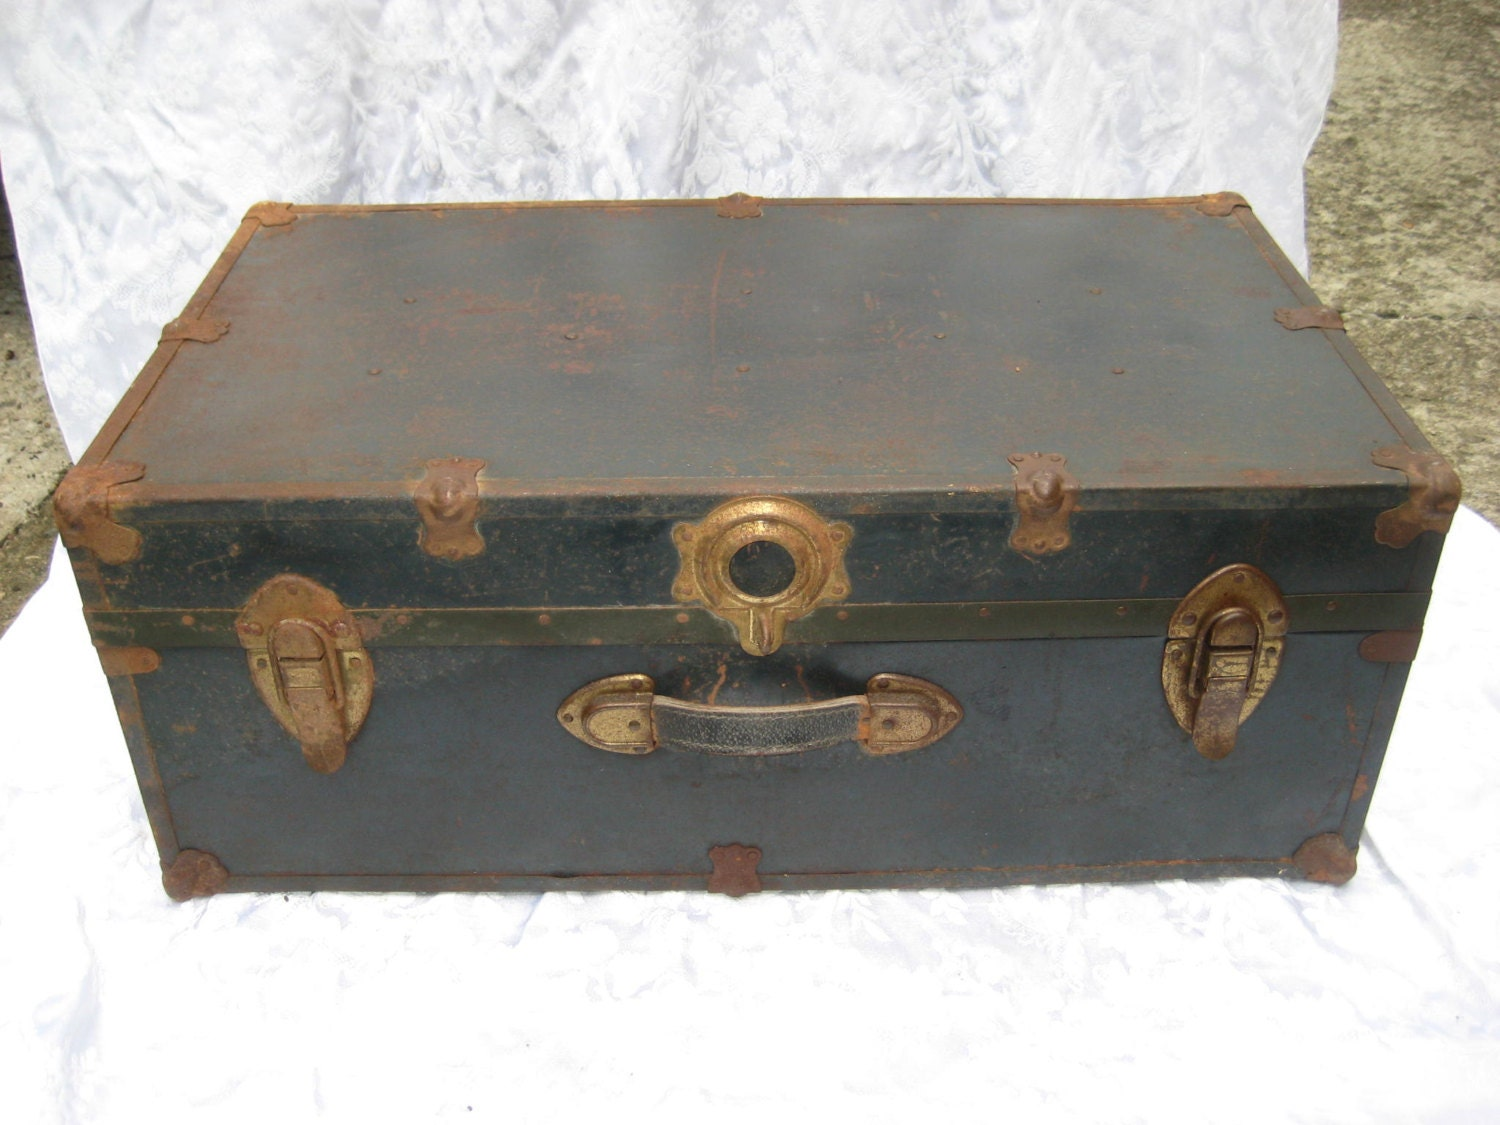 Vintage rustic trunk foot locker metal chest coffee table Metal chest coffee table